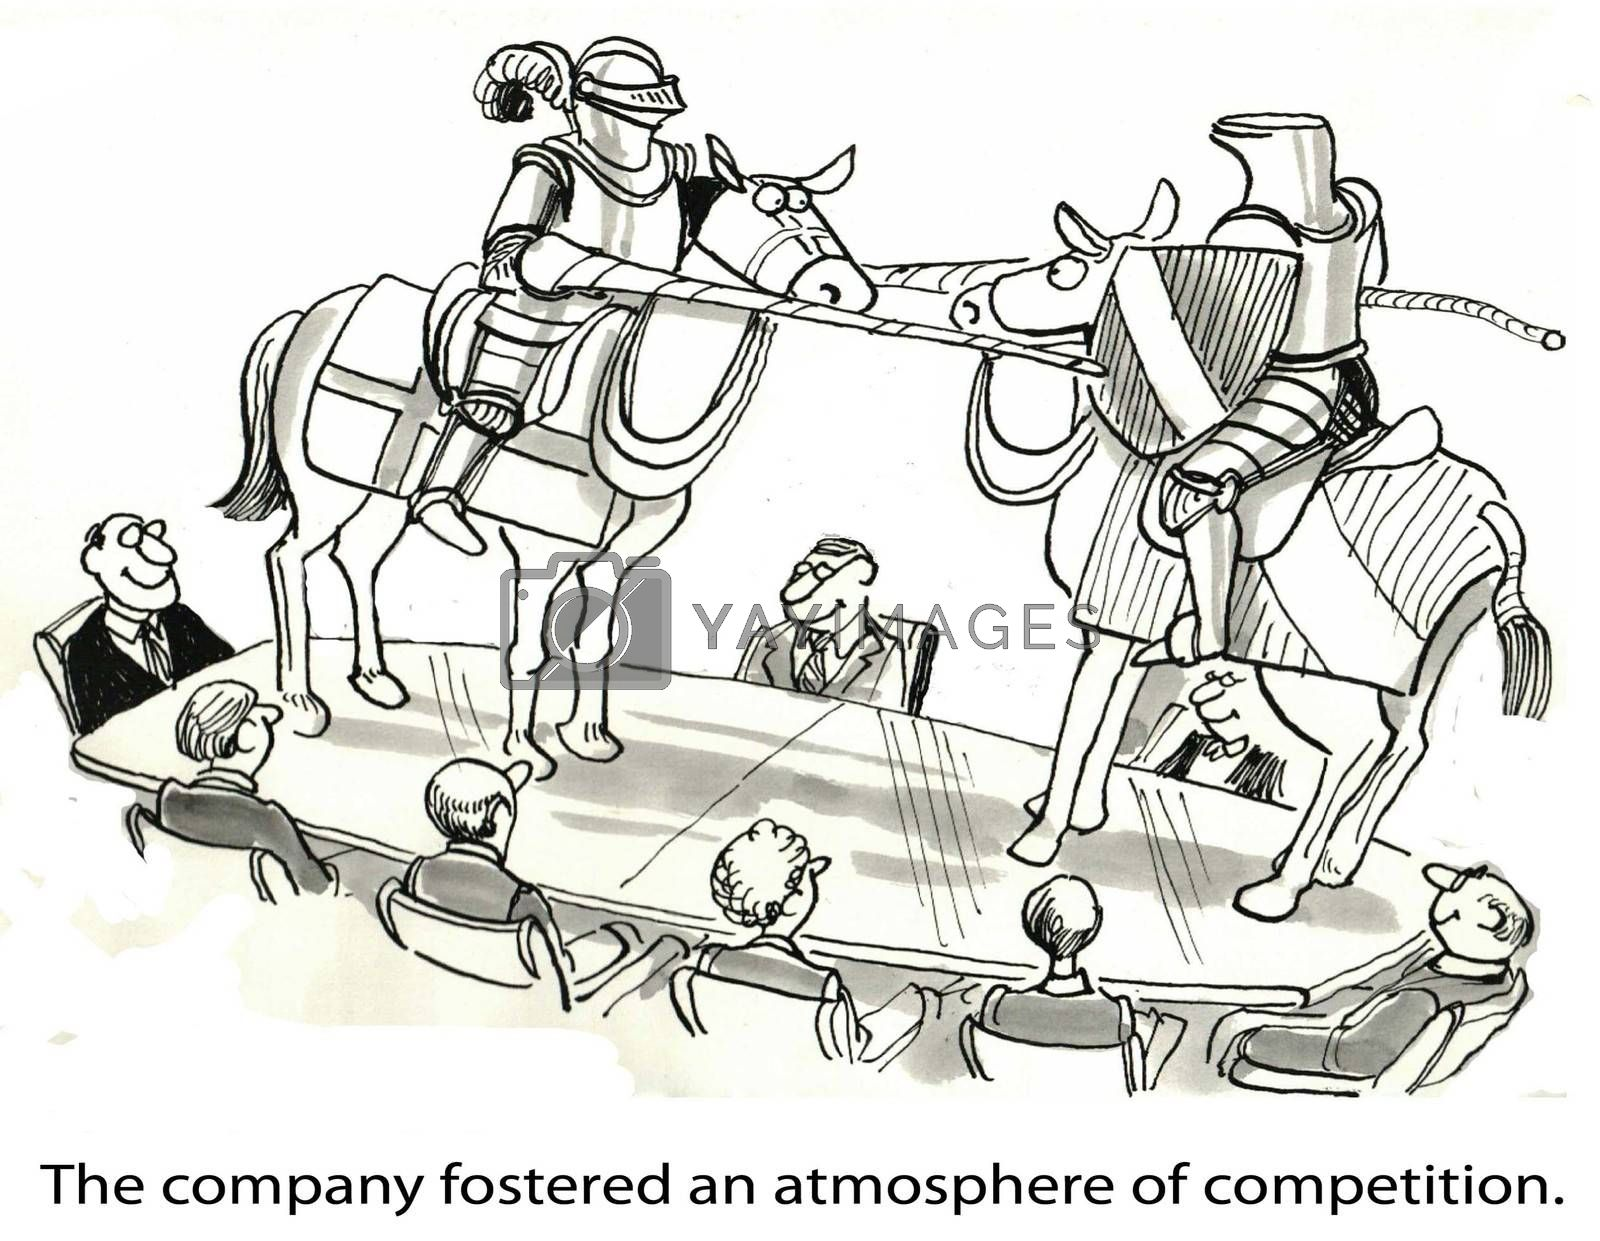 The company fostered an atmosphere of competition.